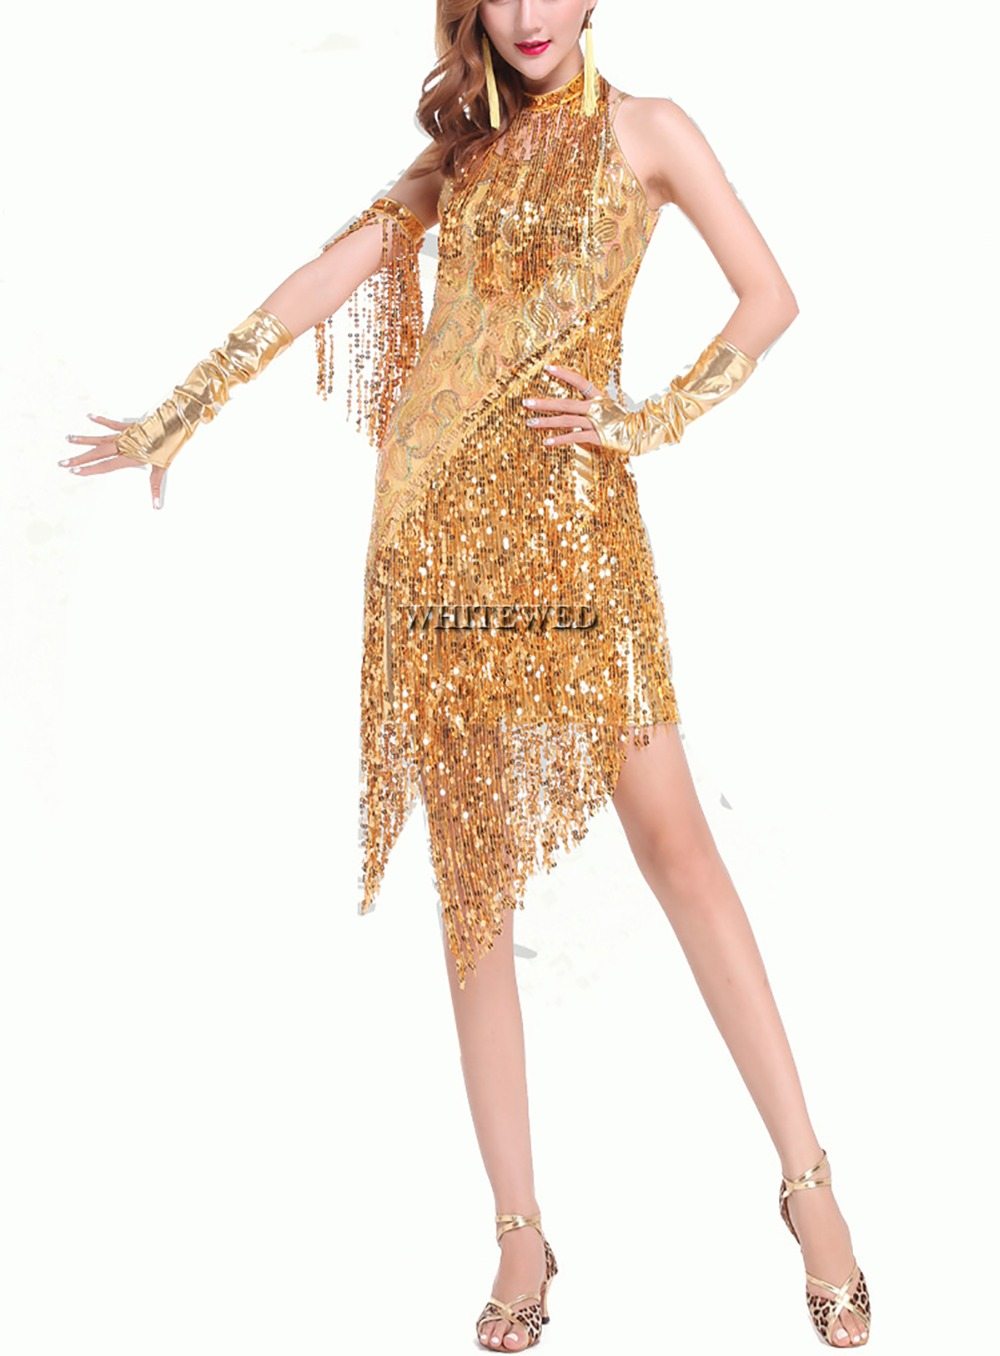 20 Great Gatsby Flapper Inspired Party Outfit Vintage Dance Dress ...